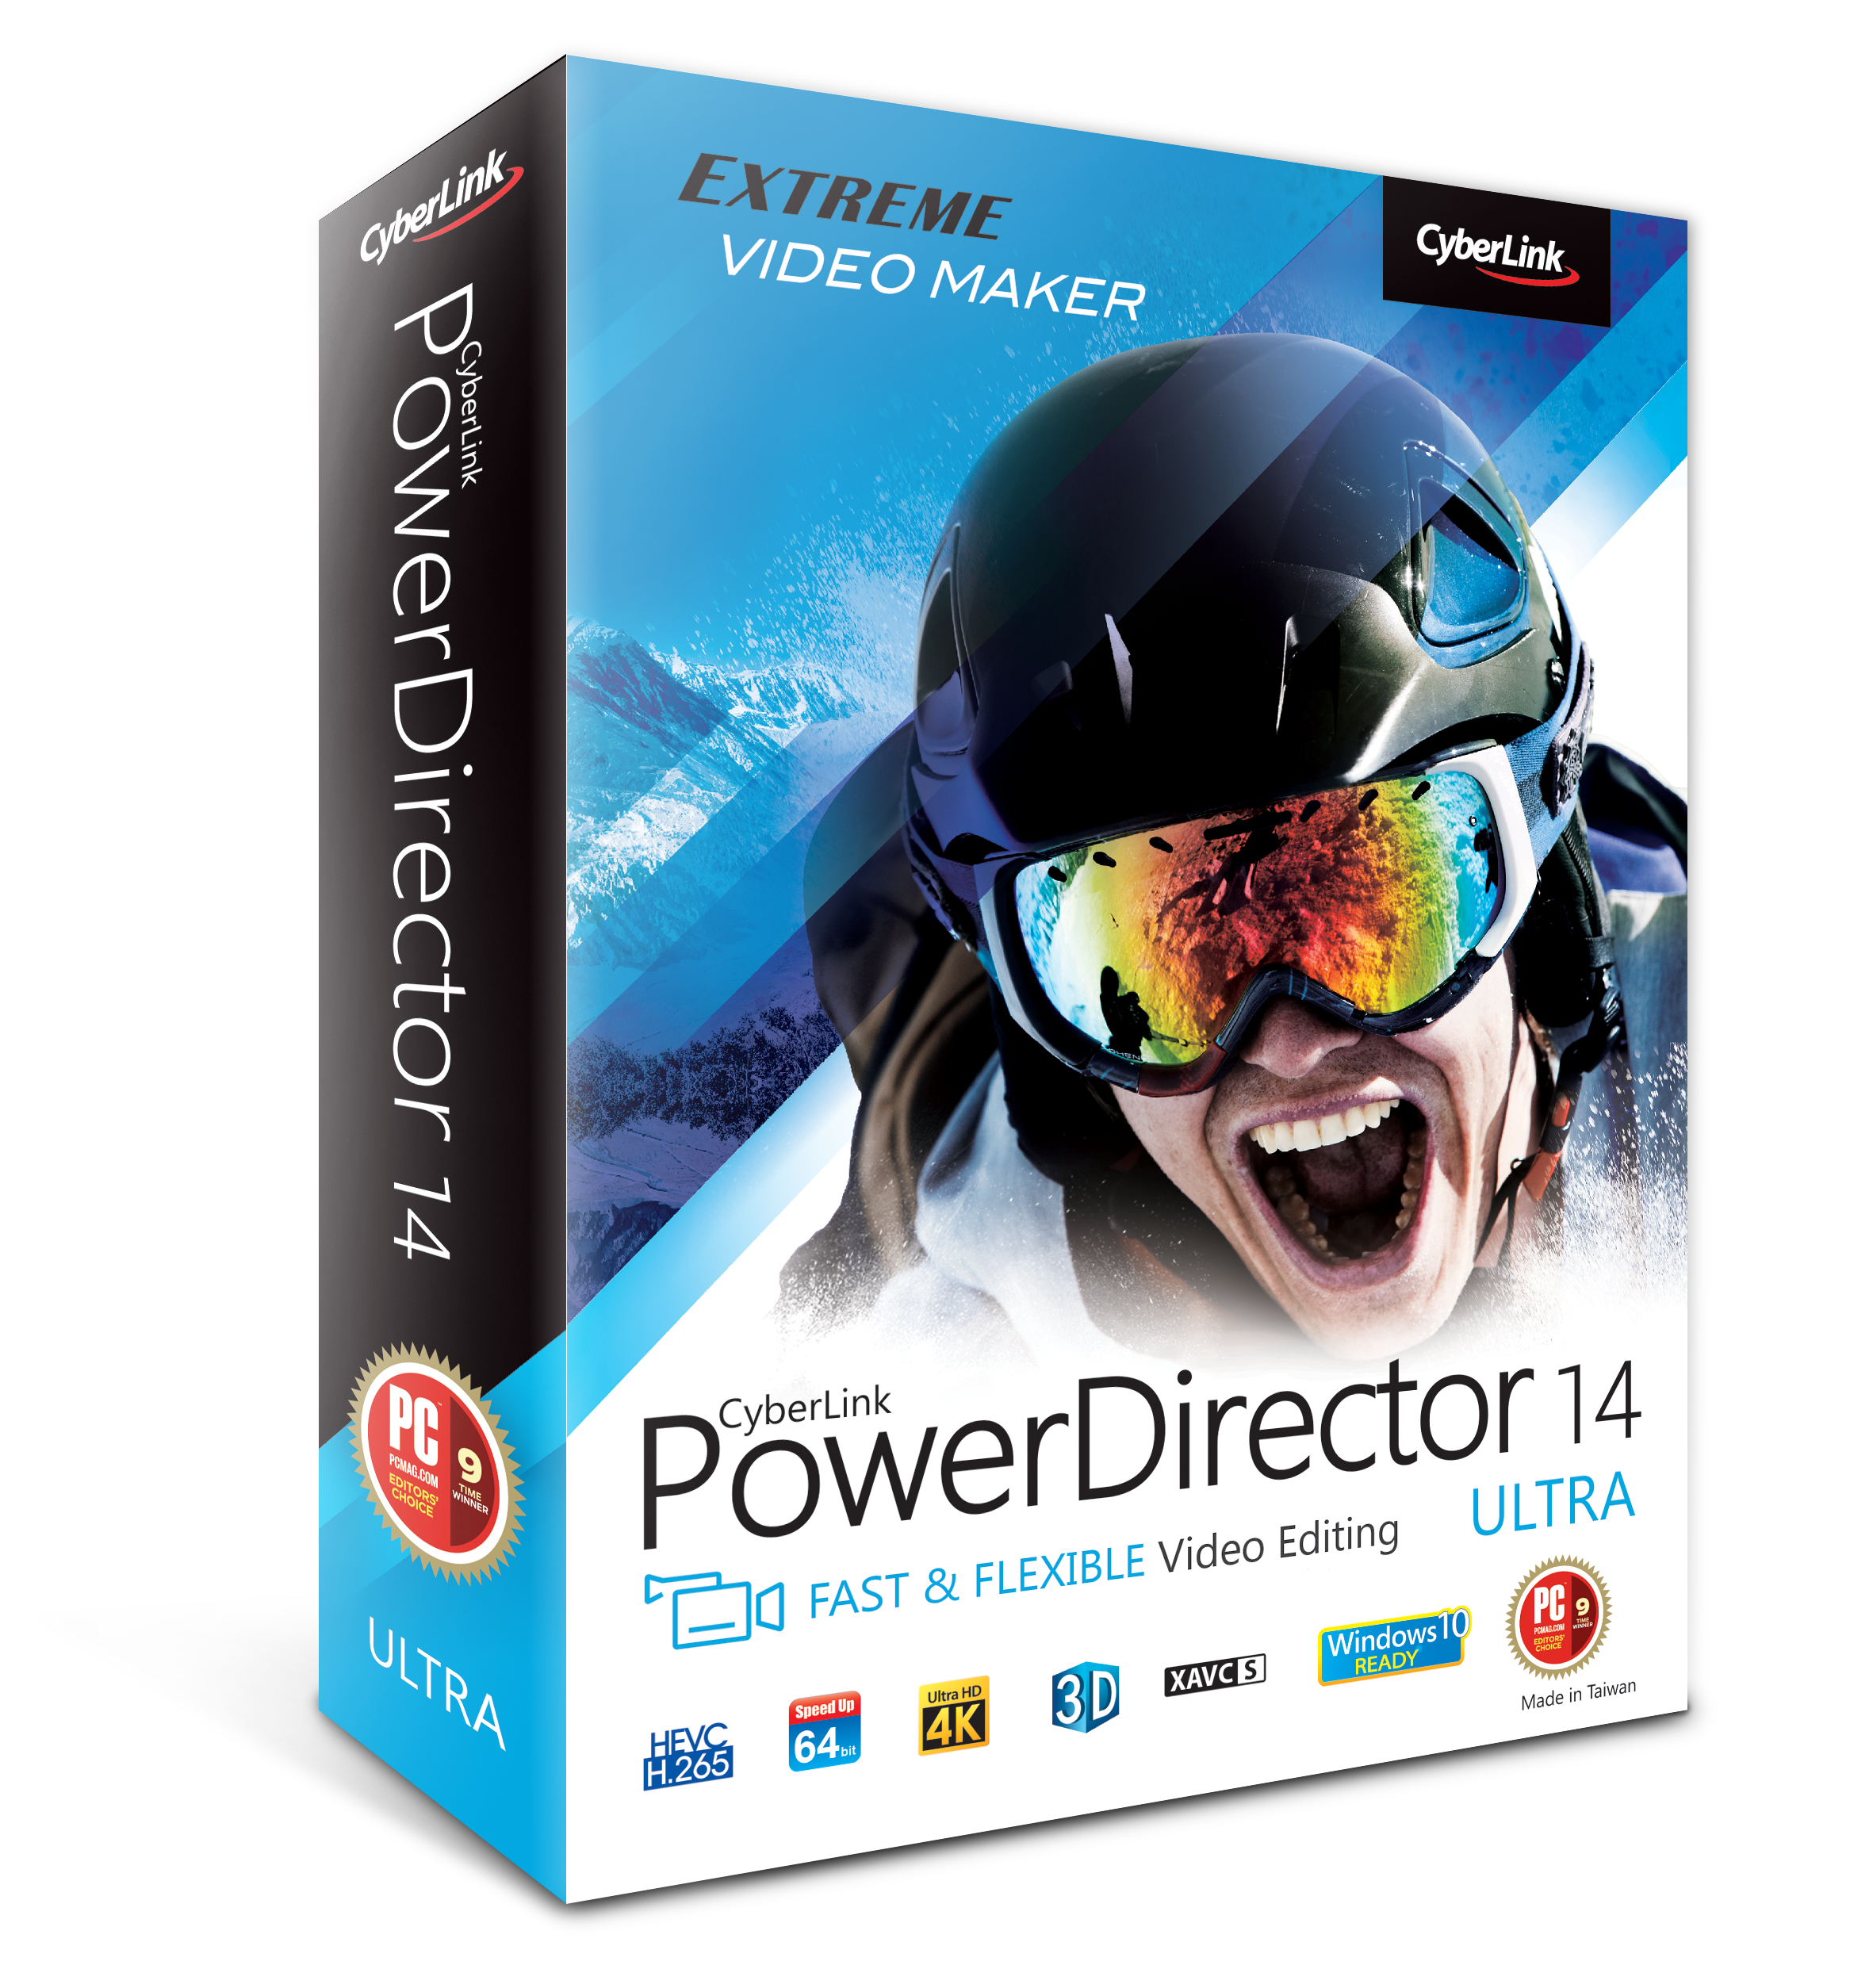 Upgrade to PowerDirector 14 Ultra from version 11 and below